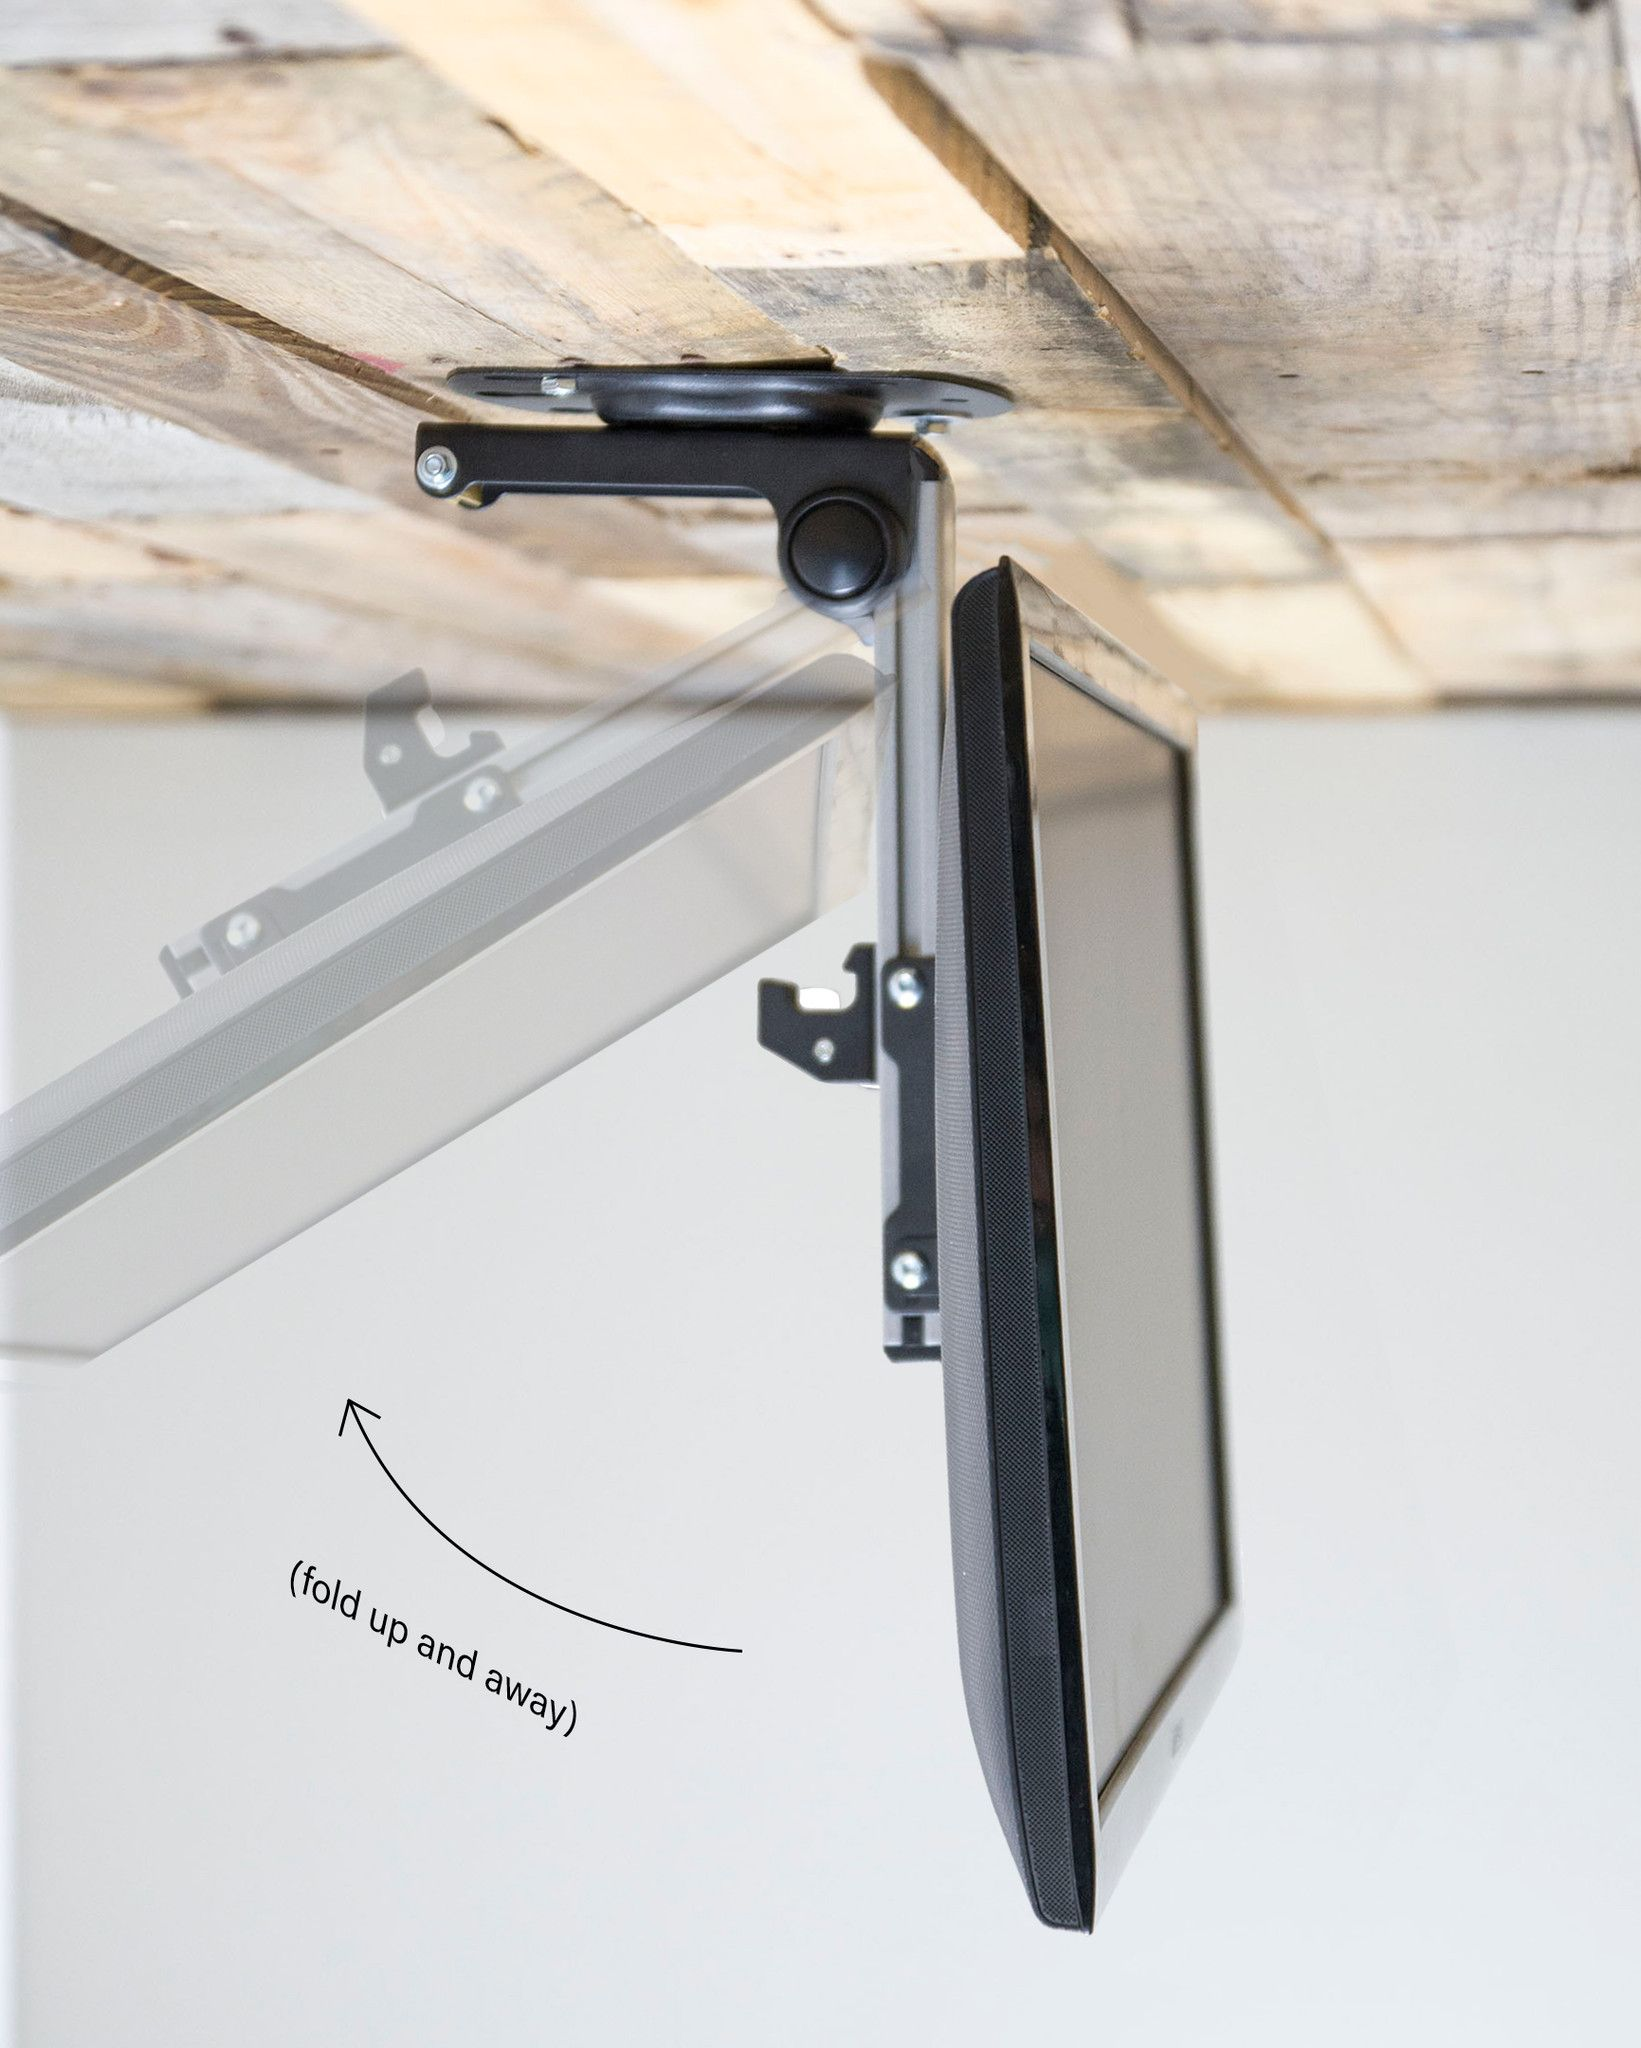 Vivo Folding Pitched Roof Ceiling Mount For Lcd Flat Tv And Monitors